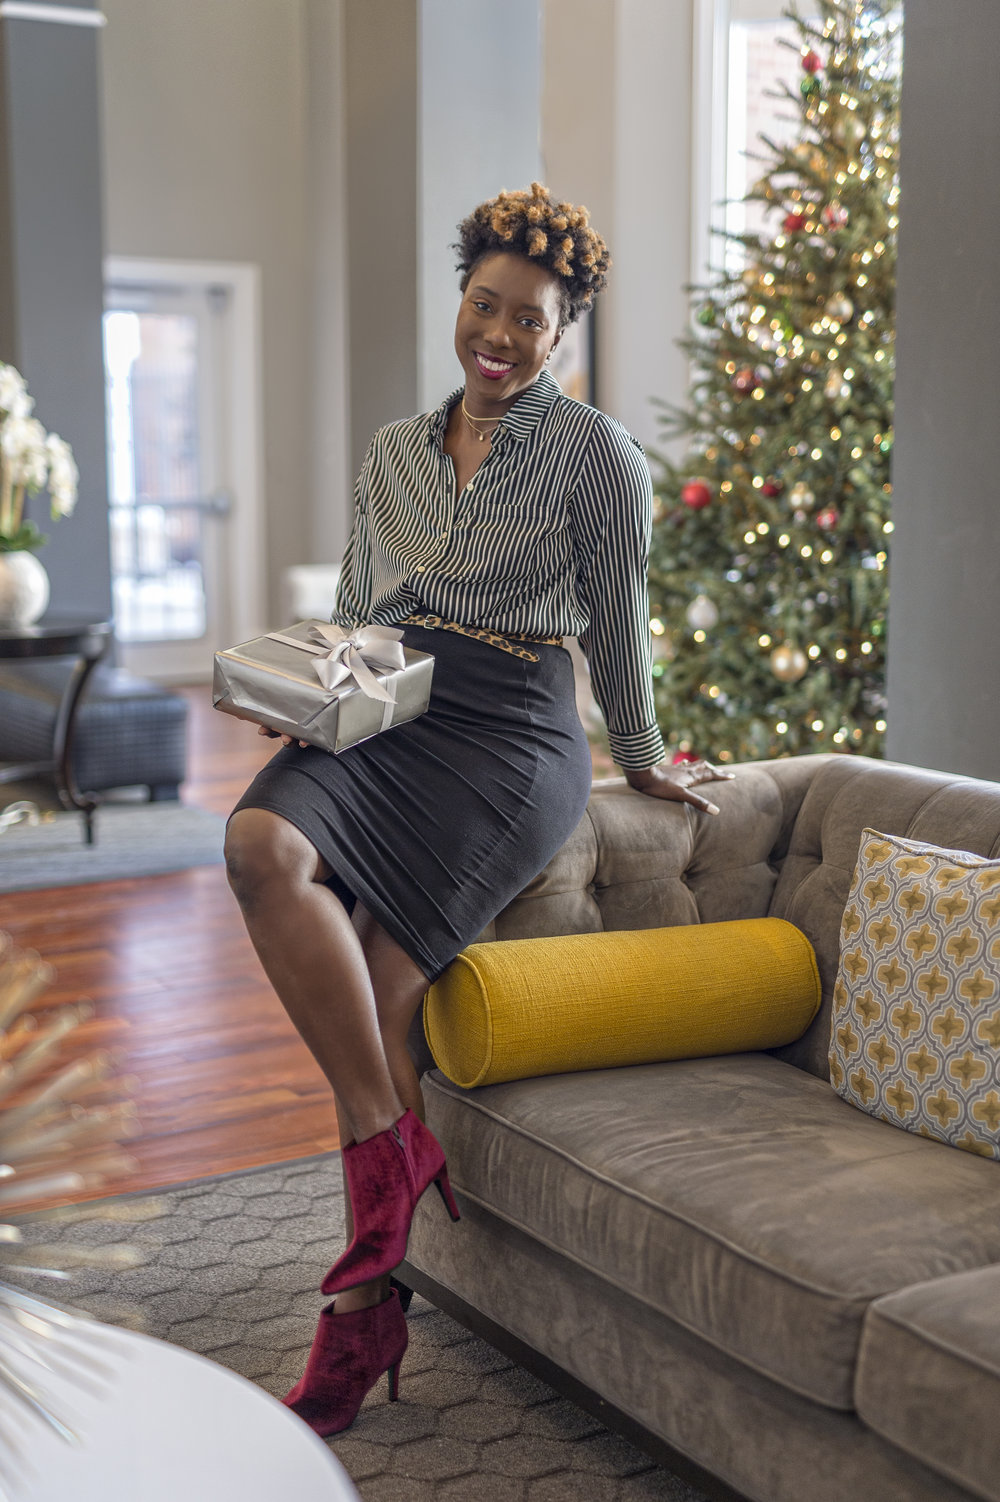 mommy-daughter-christmas-outfits-mother-daughter-style-dayna-bolden-old-navy-5.JPG